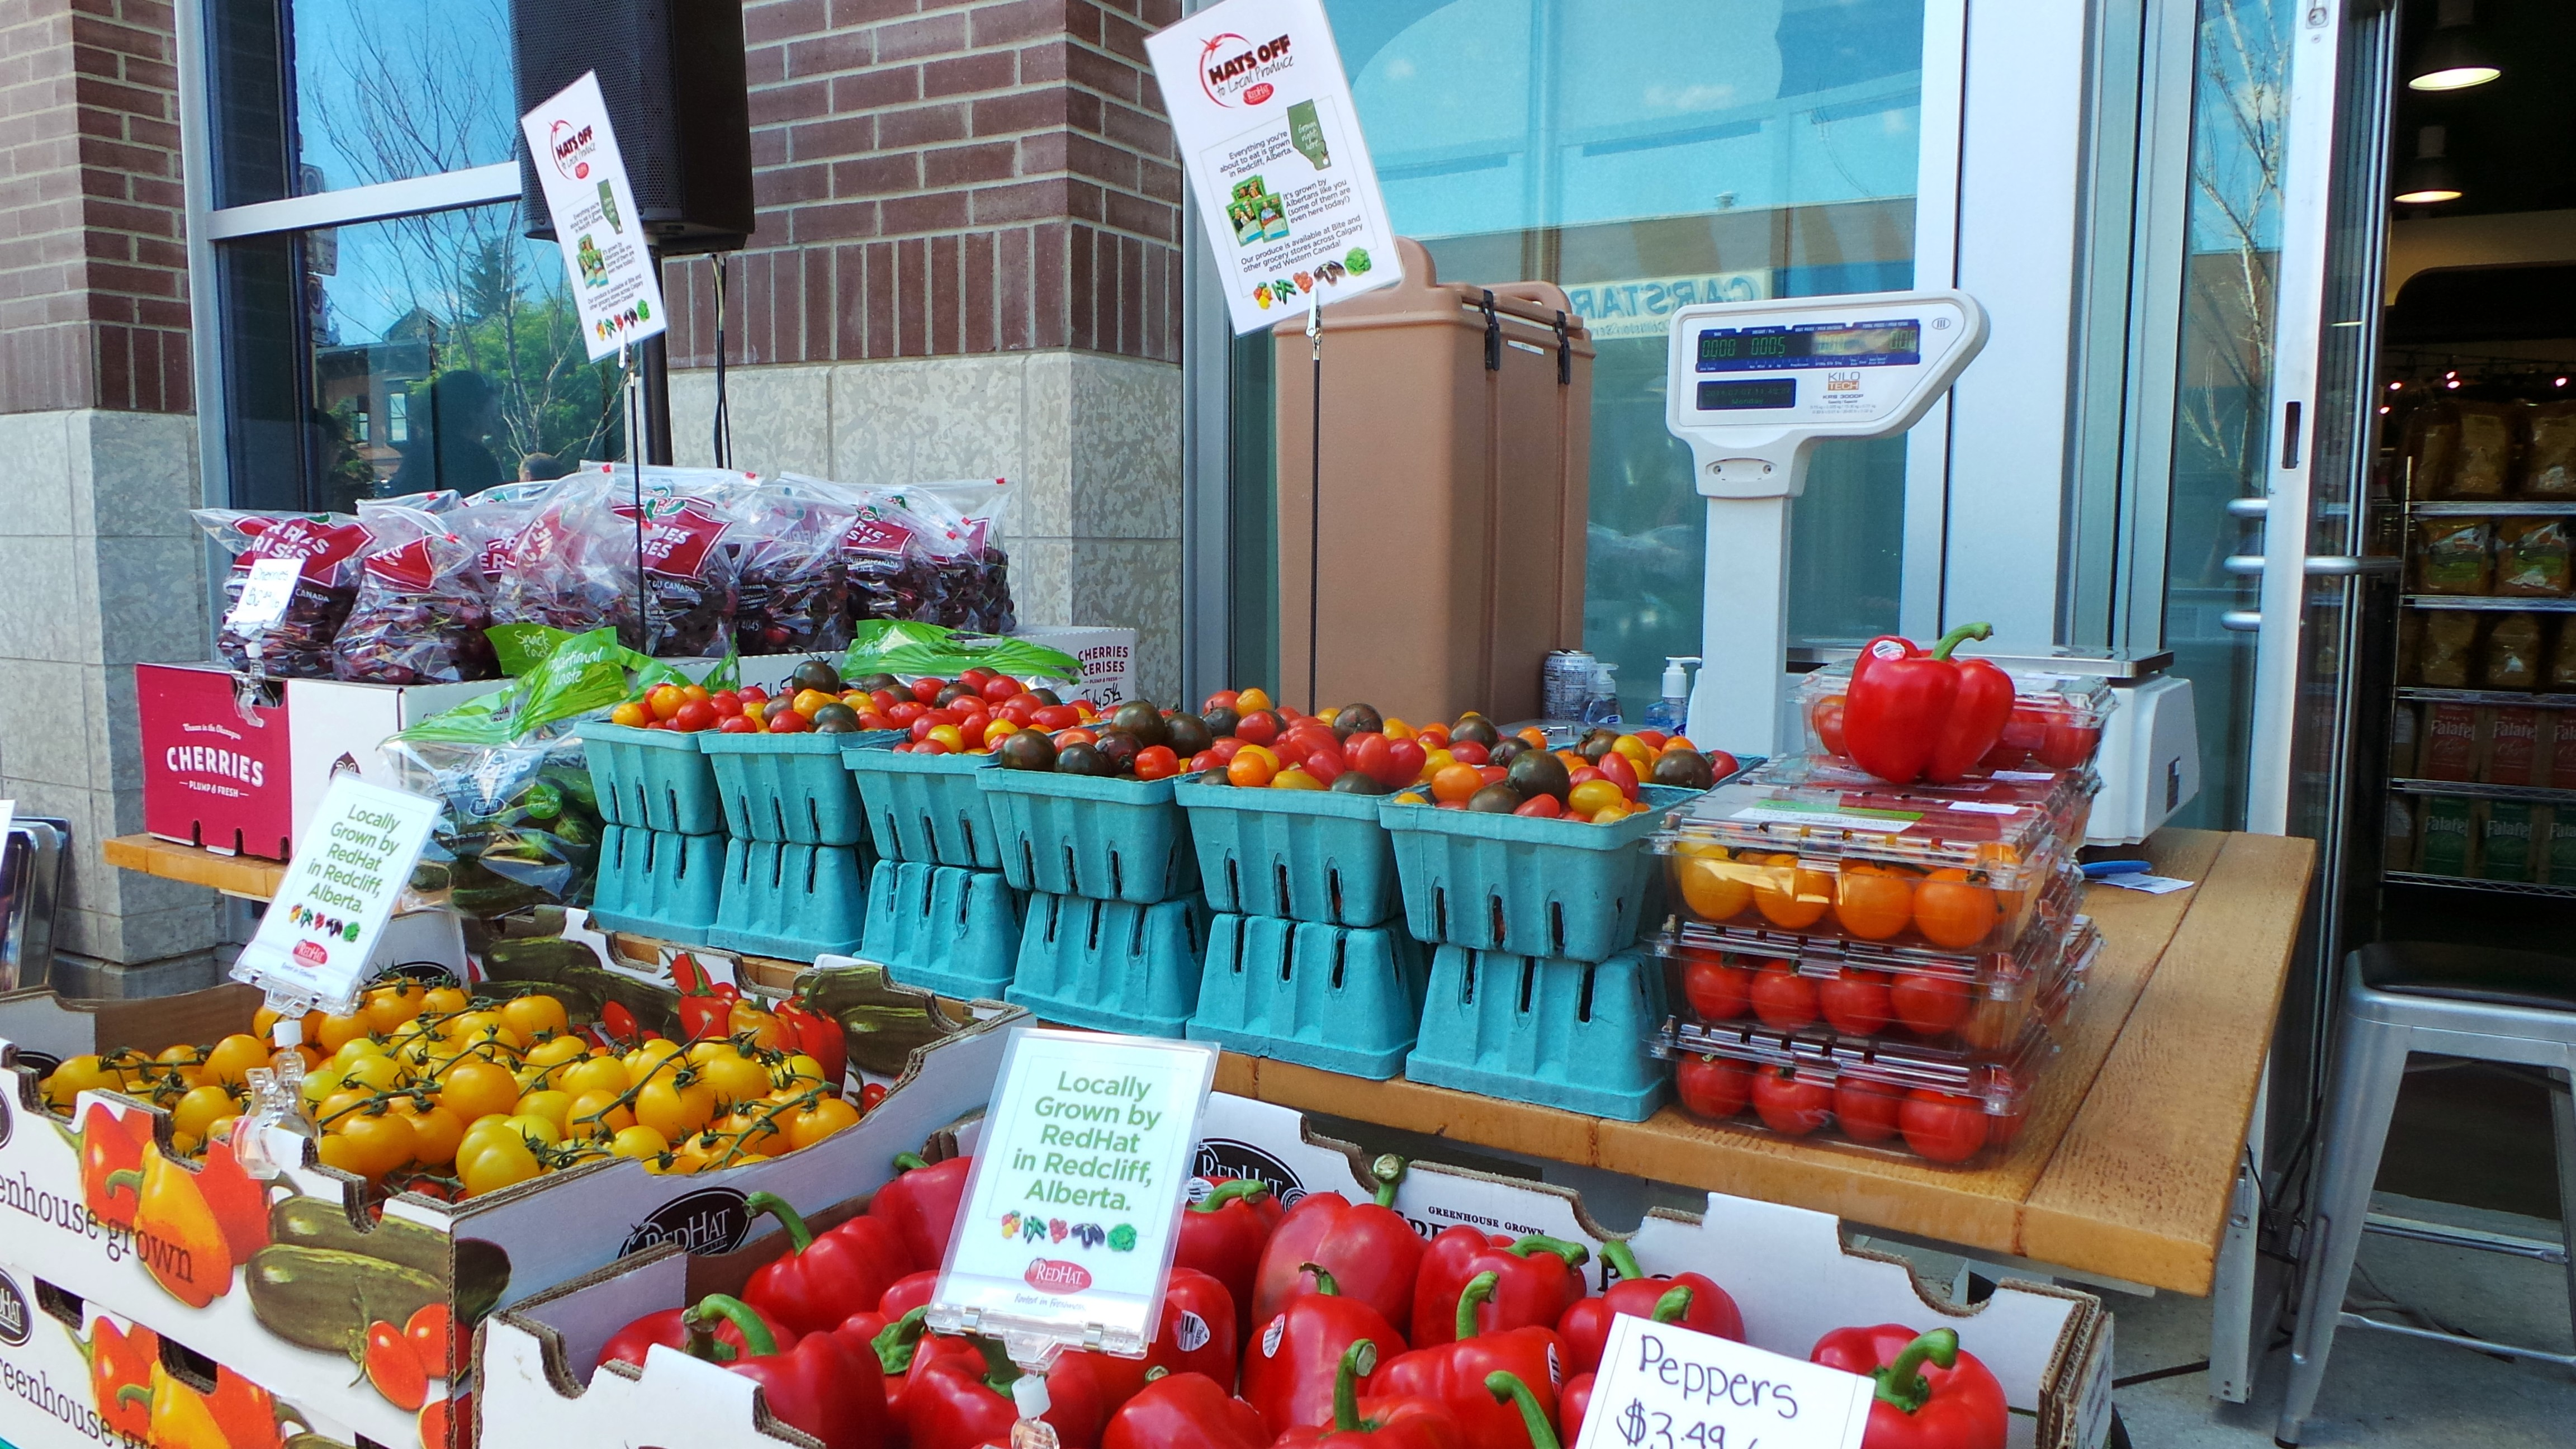 Produce_Local_Alberta_RedHat